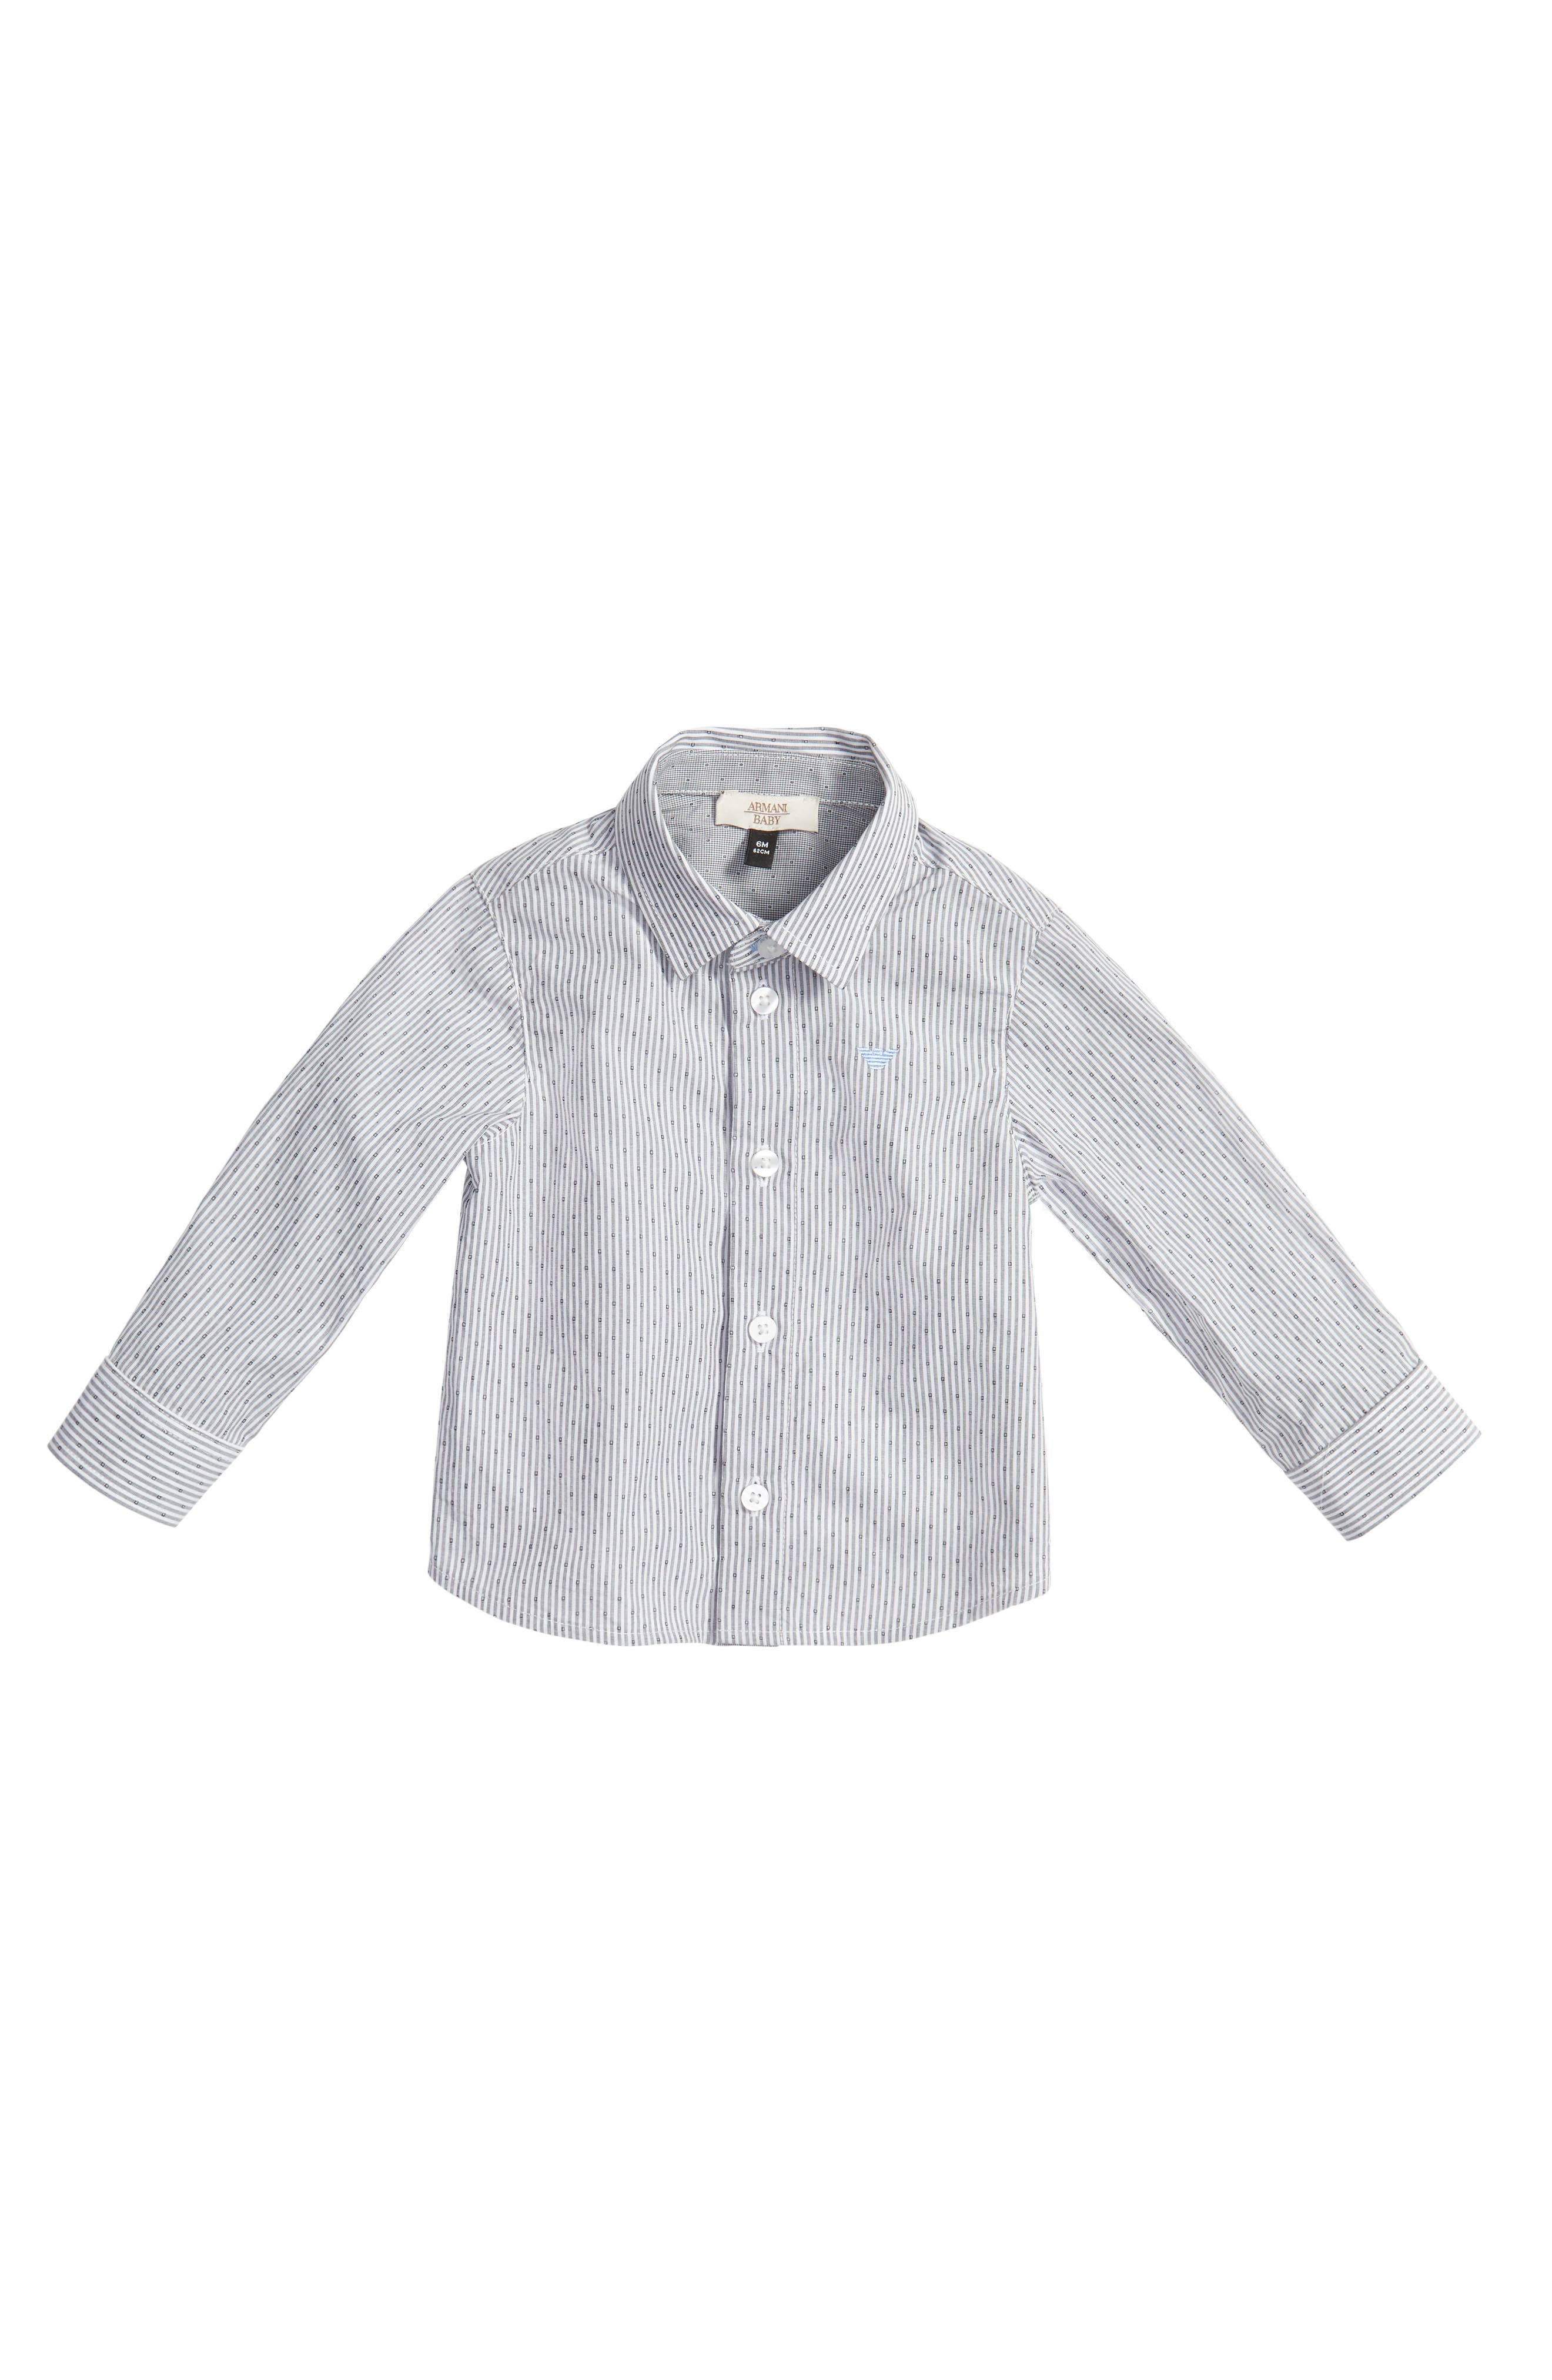 Alternate Image 1 Selected - Armani Junior Stripe Dress Shirt (Baby Boys)